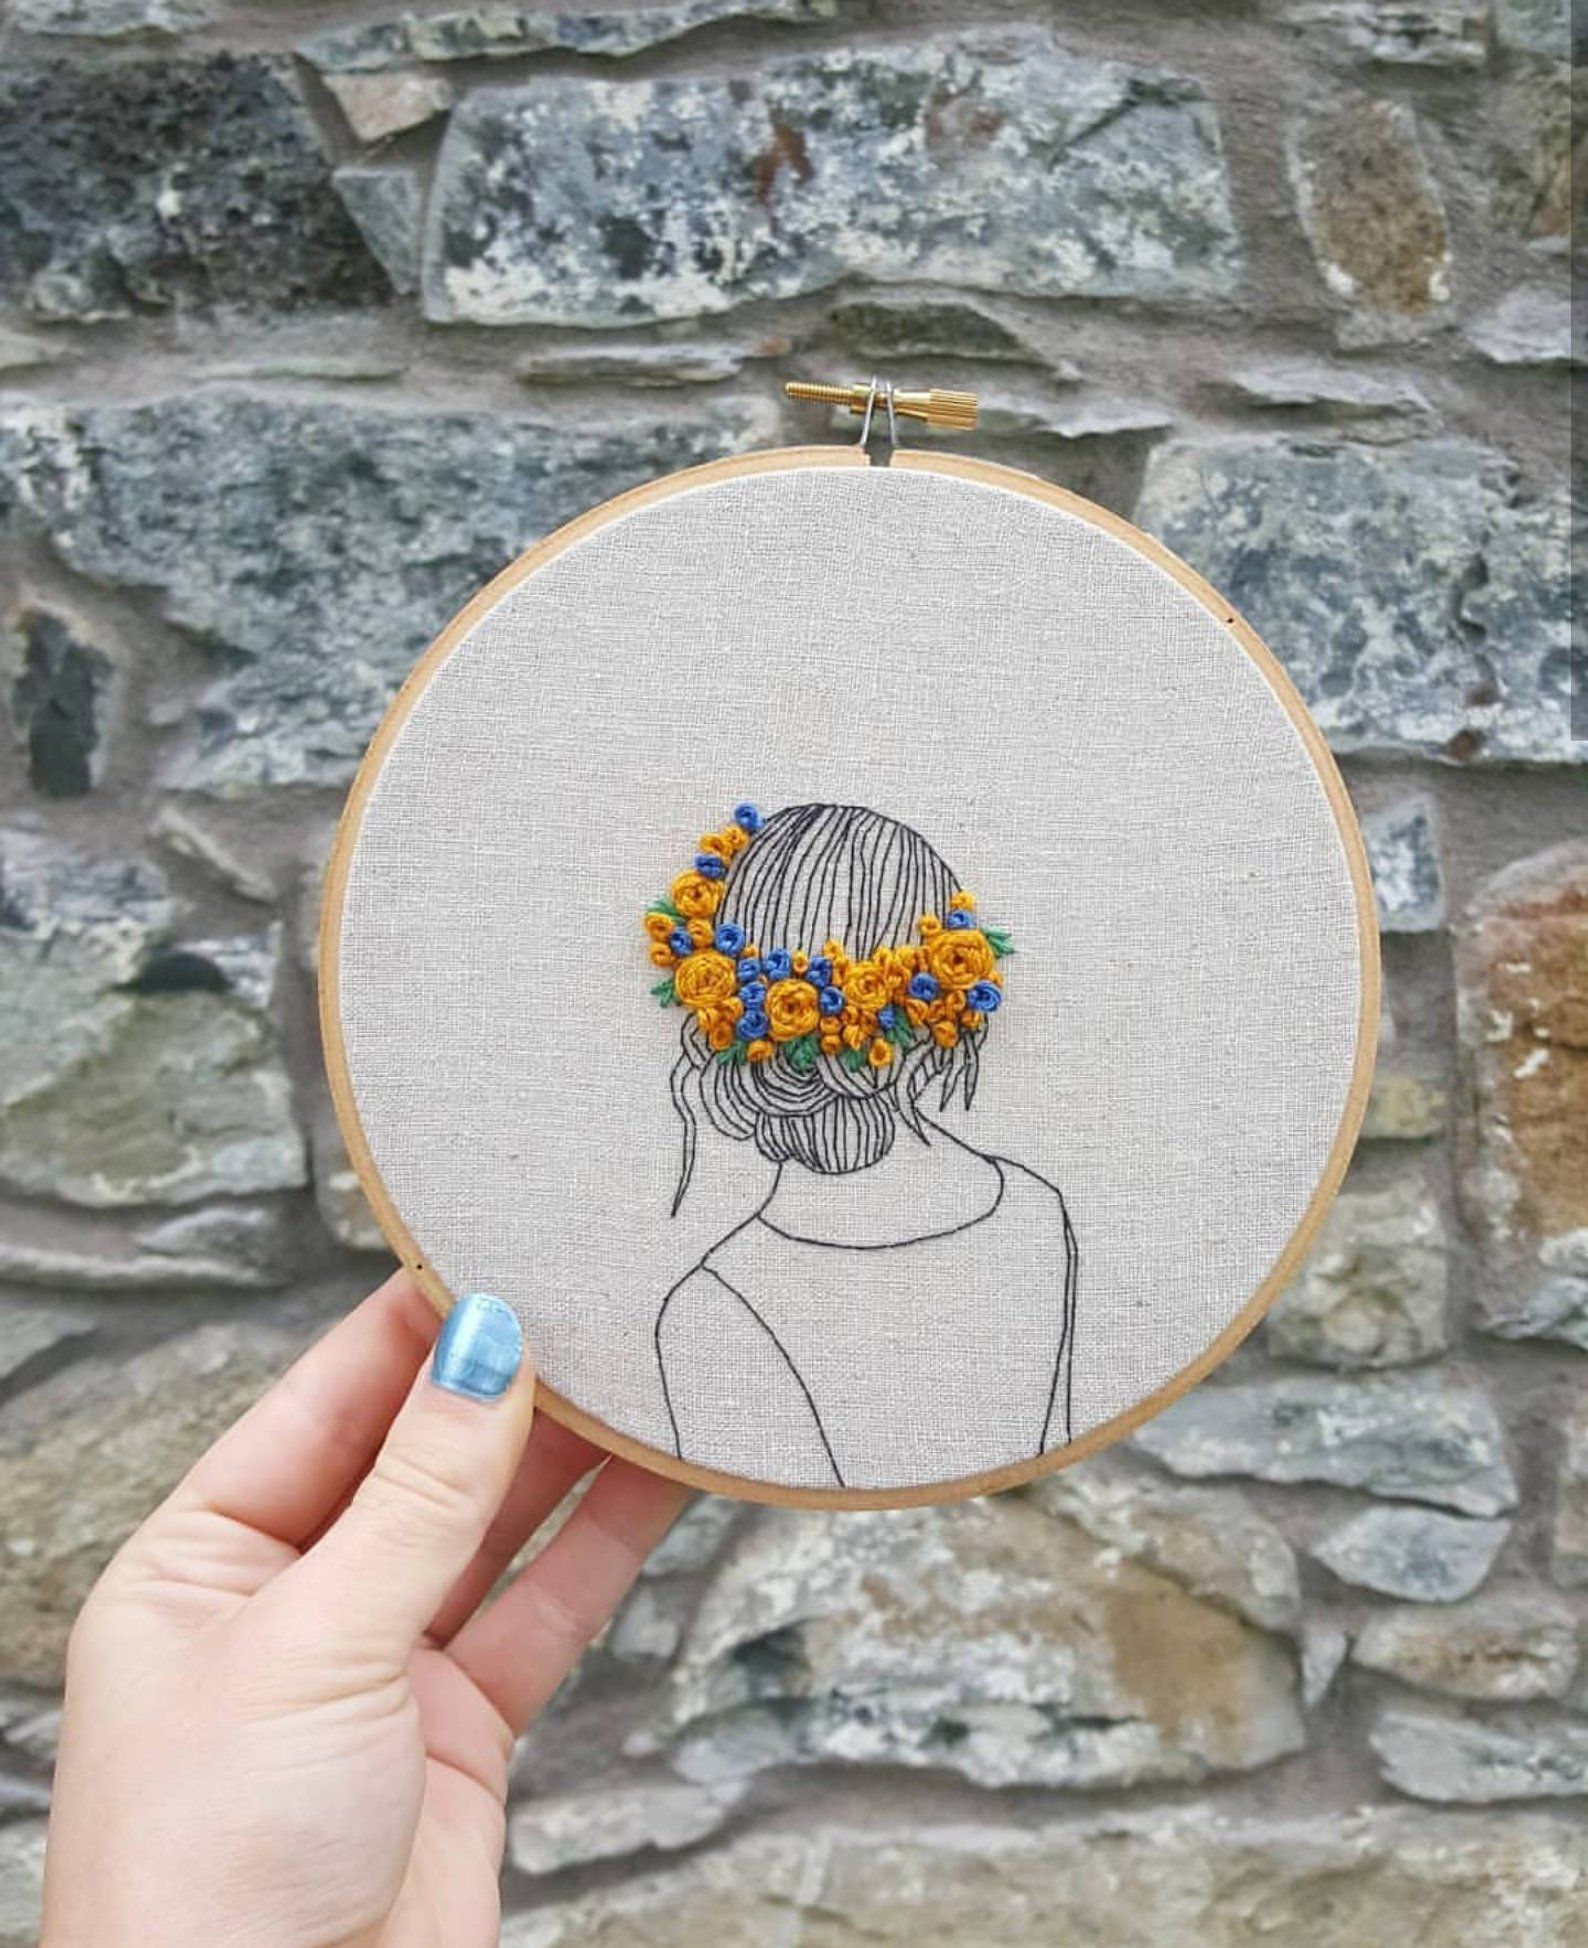 Handmade embroidery art